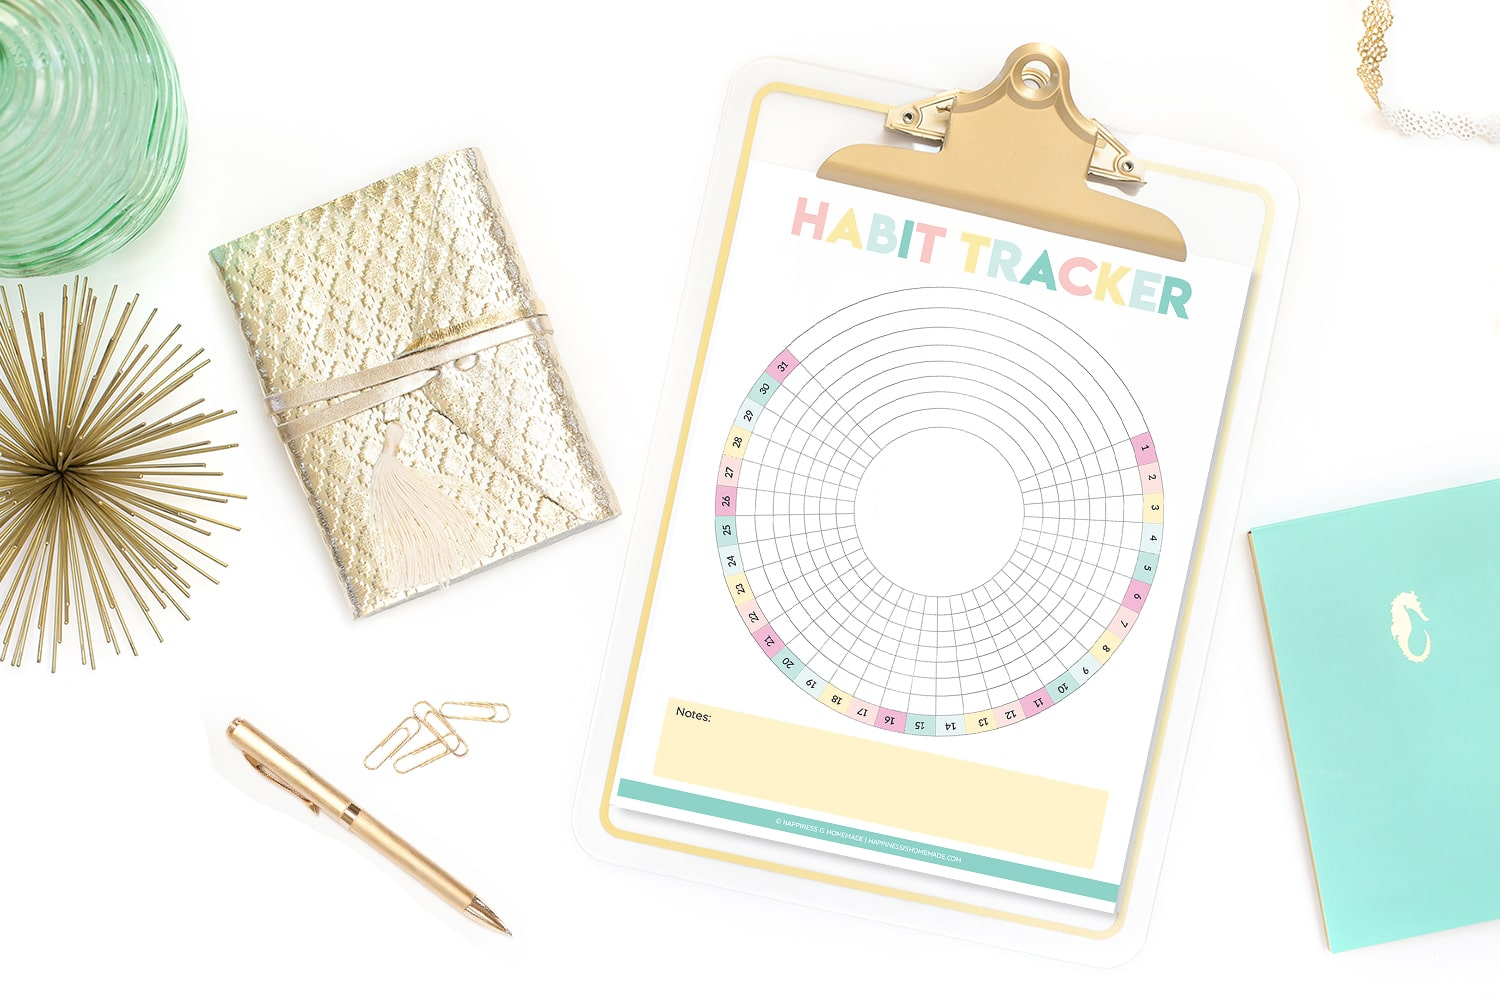 Printable circle habit tracker on gold clipboard on white background with gold wallet, gold pen, and gold paperclips